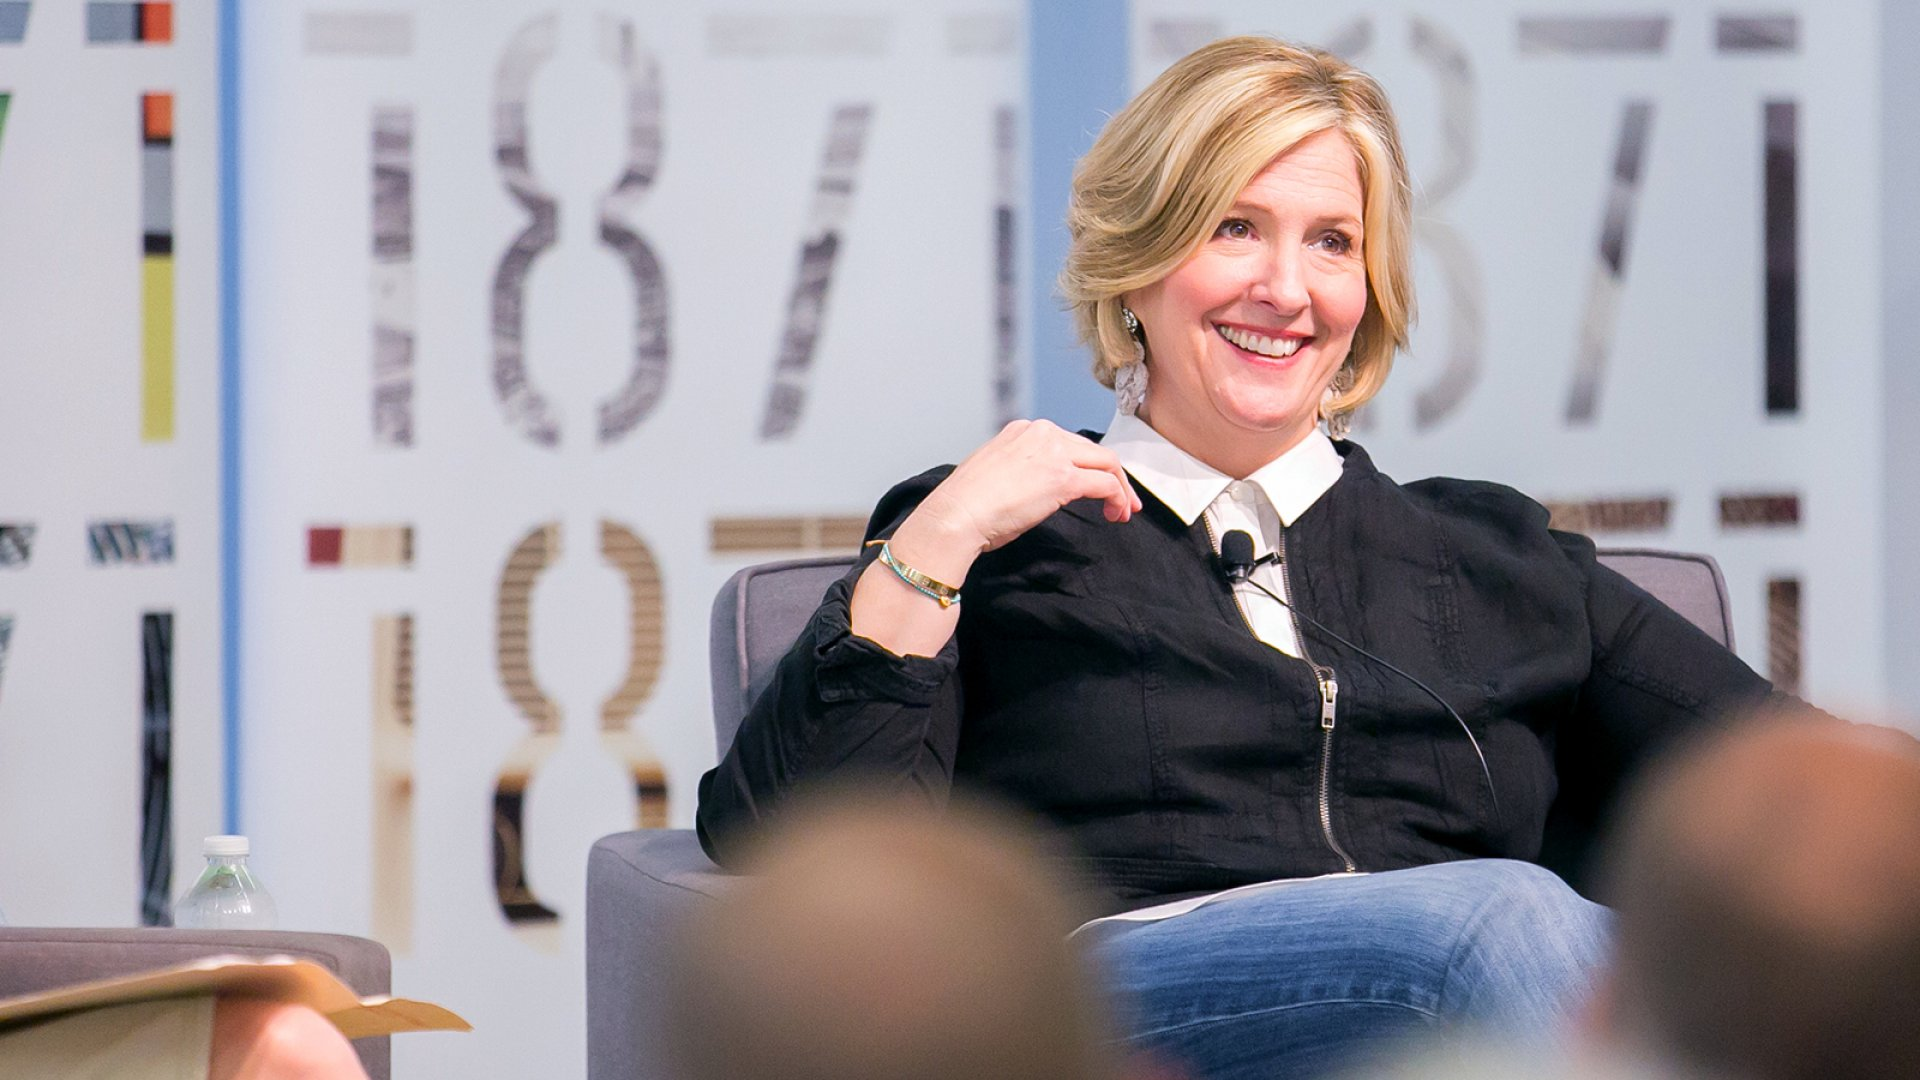 3 Tips From Brene Brown About Failing Brilliantly